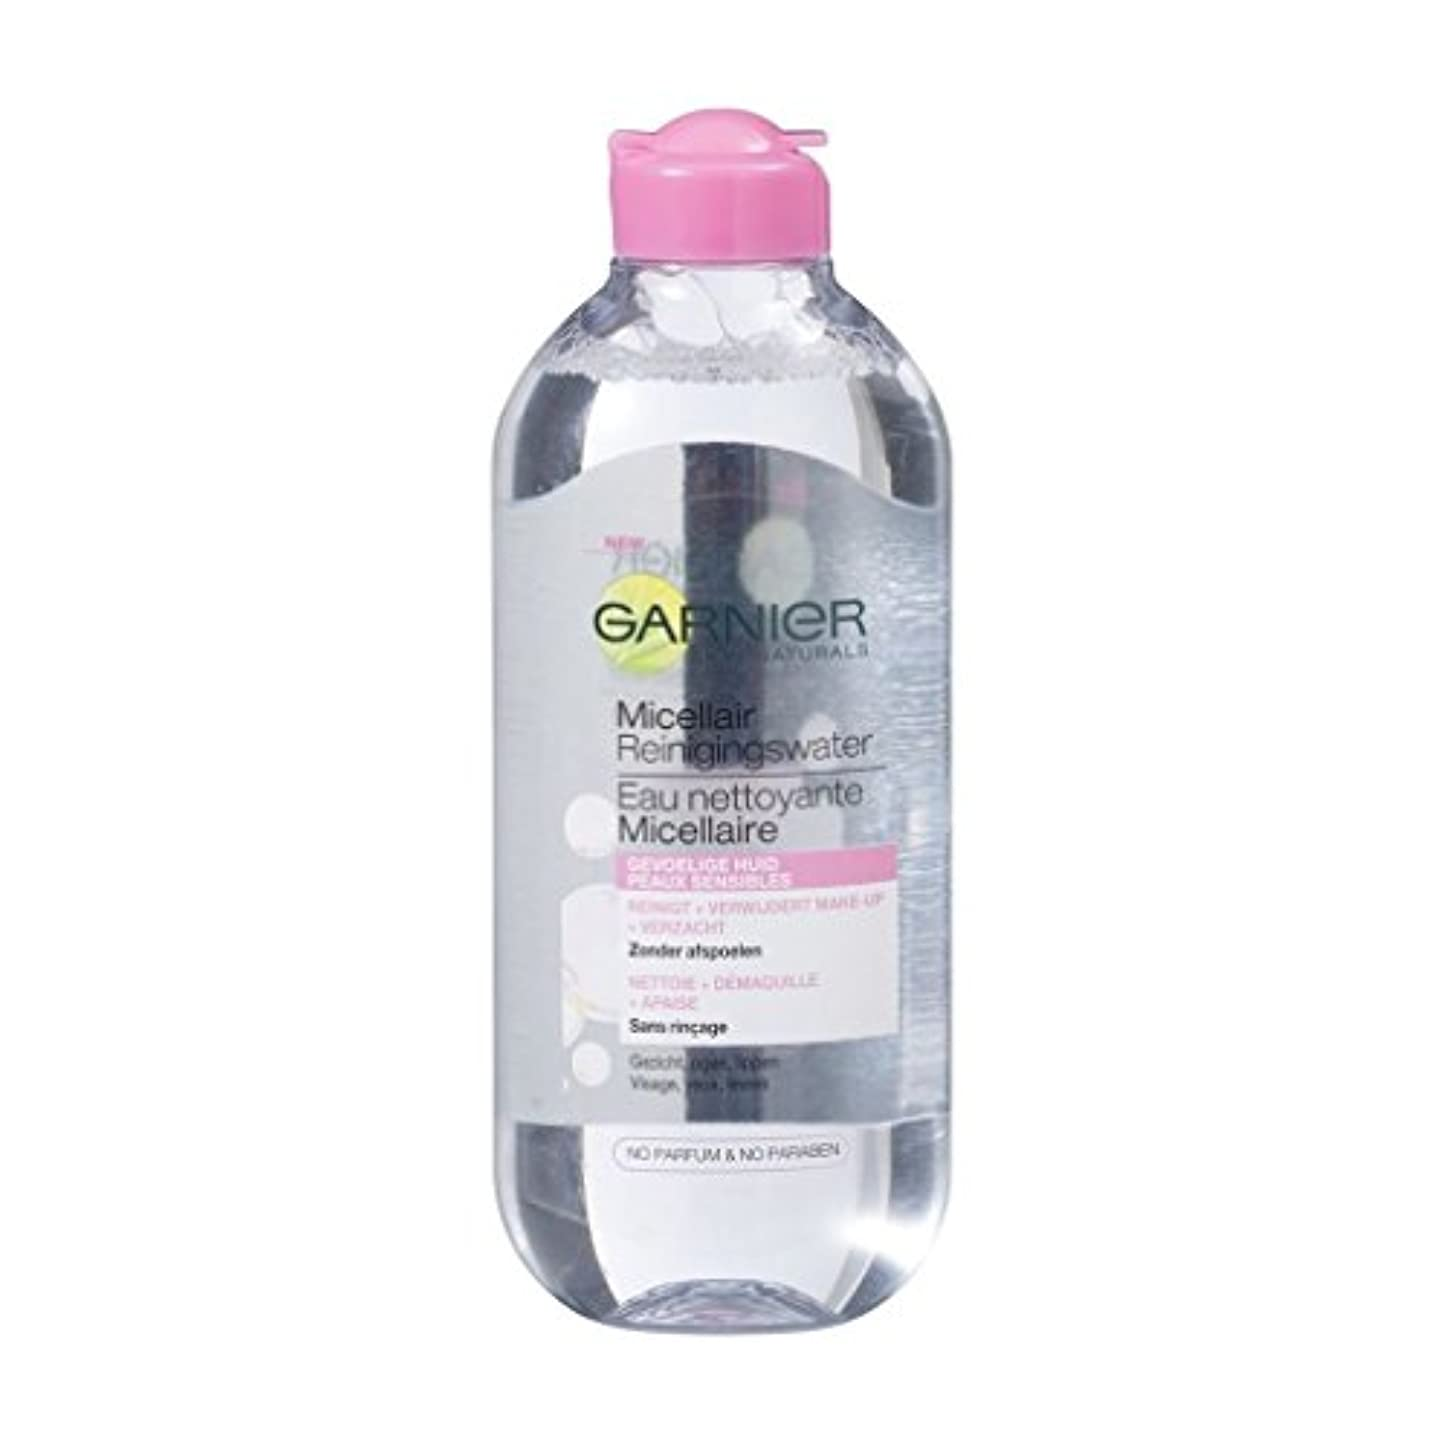 ガルニエ SkinActive Micellar Water (No Perfume & Paraben) - For Sensitive Skin 400ml/13.3oz並行輸入品